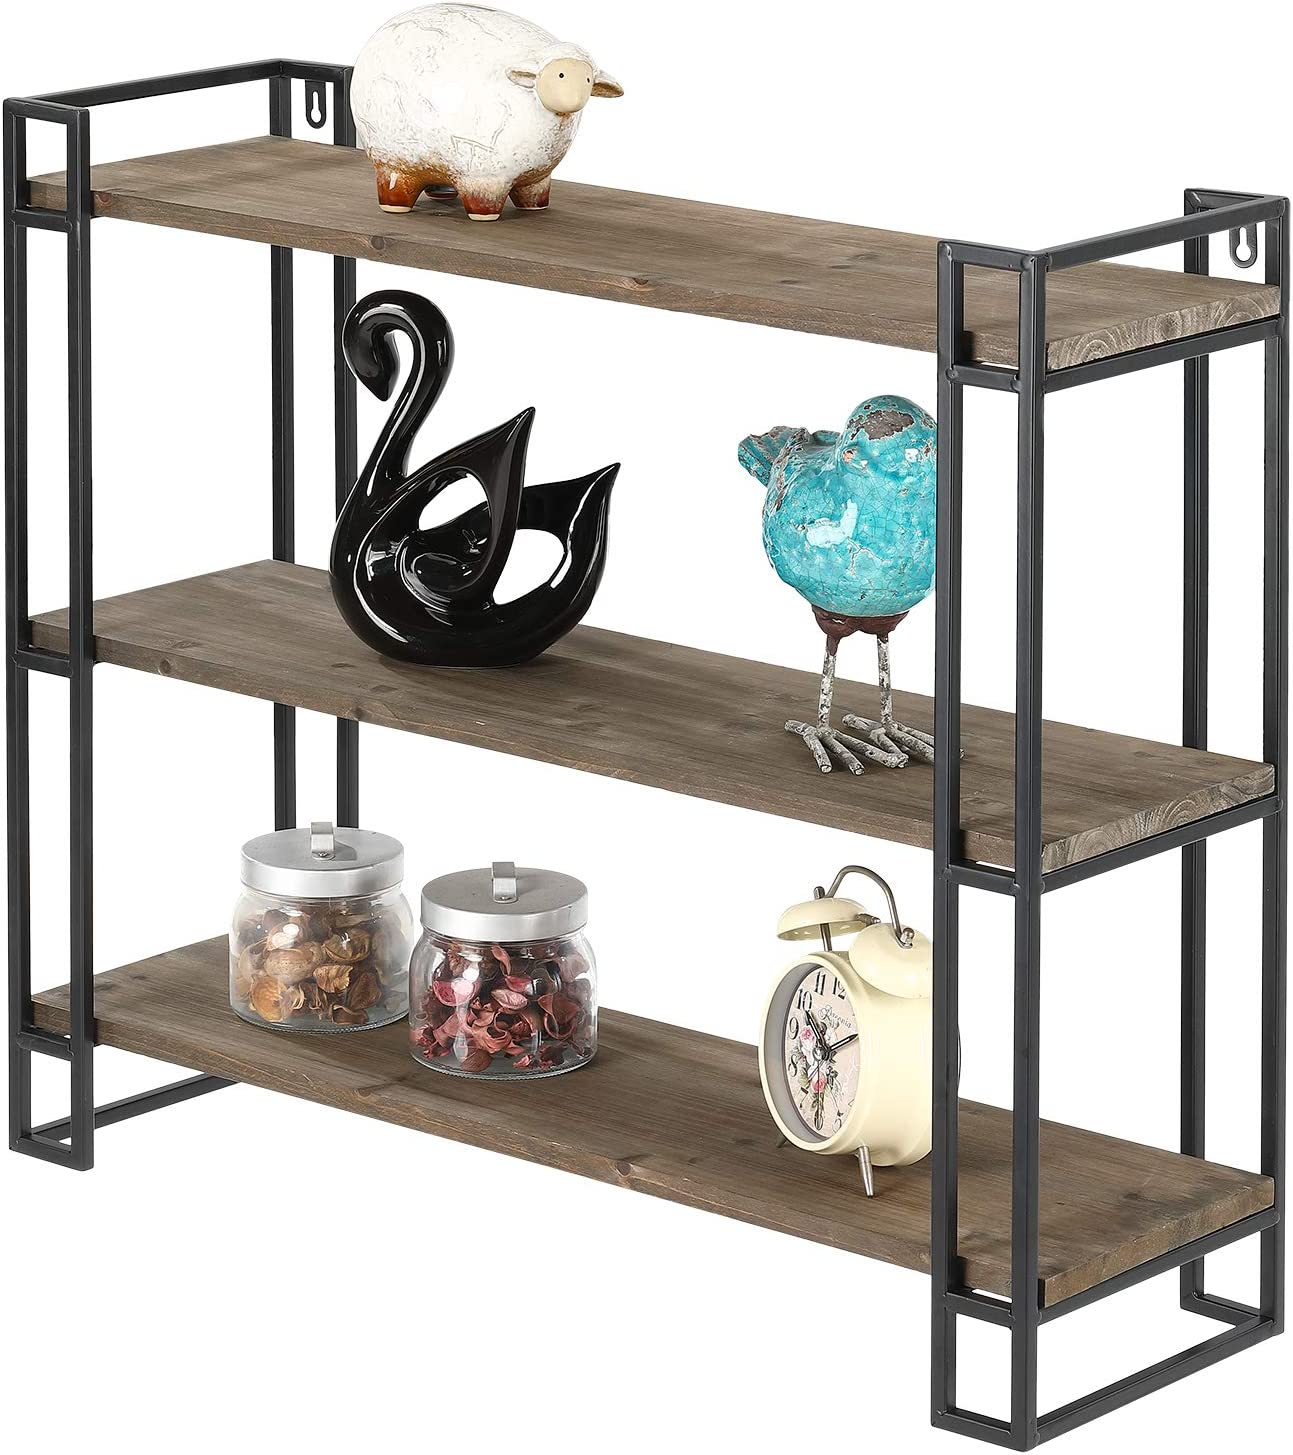 MOCOME 3 Tier Industrial Wood Bookshelves with Metal Frame, Wall Mounted/Freestanding Rustic Bookcases, Floating Wall Shelf for Bathroom Bedroom(Natural)